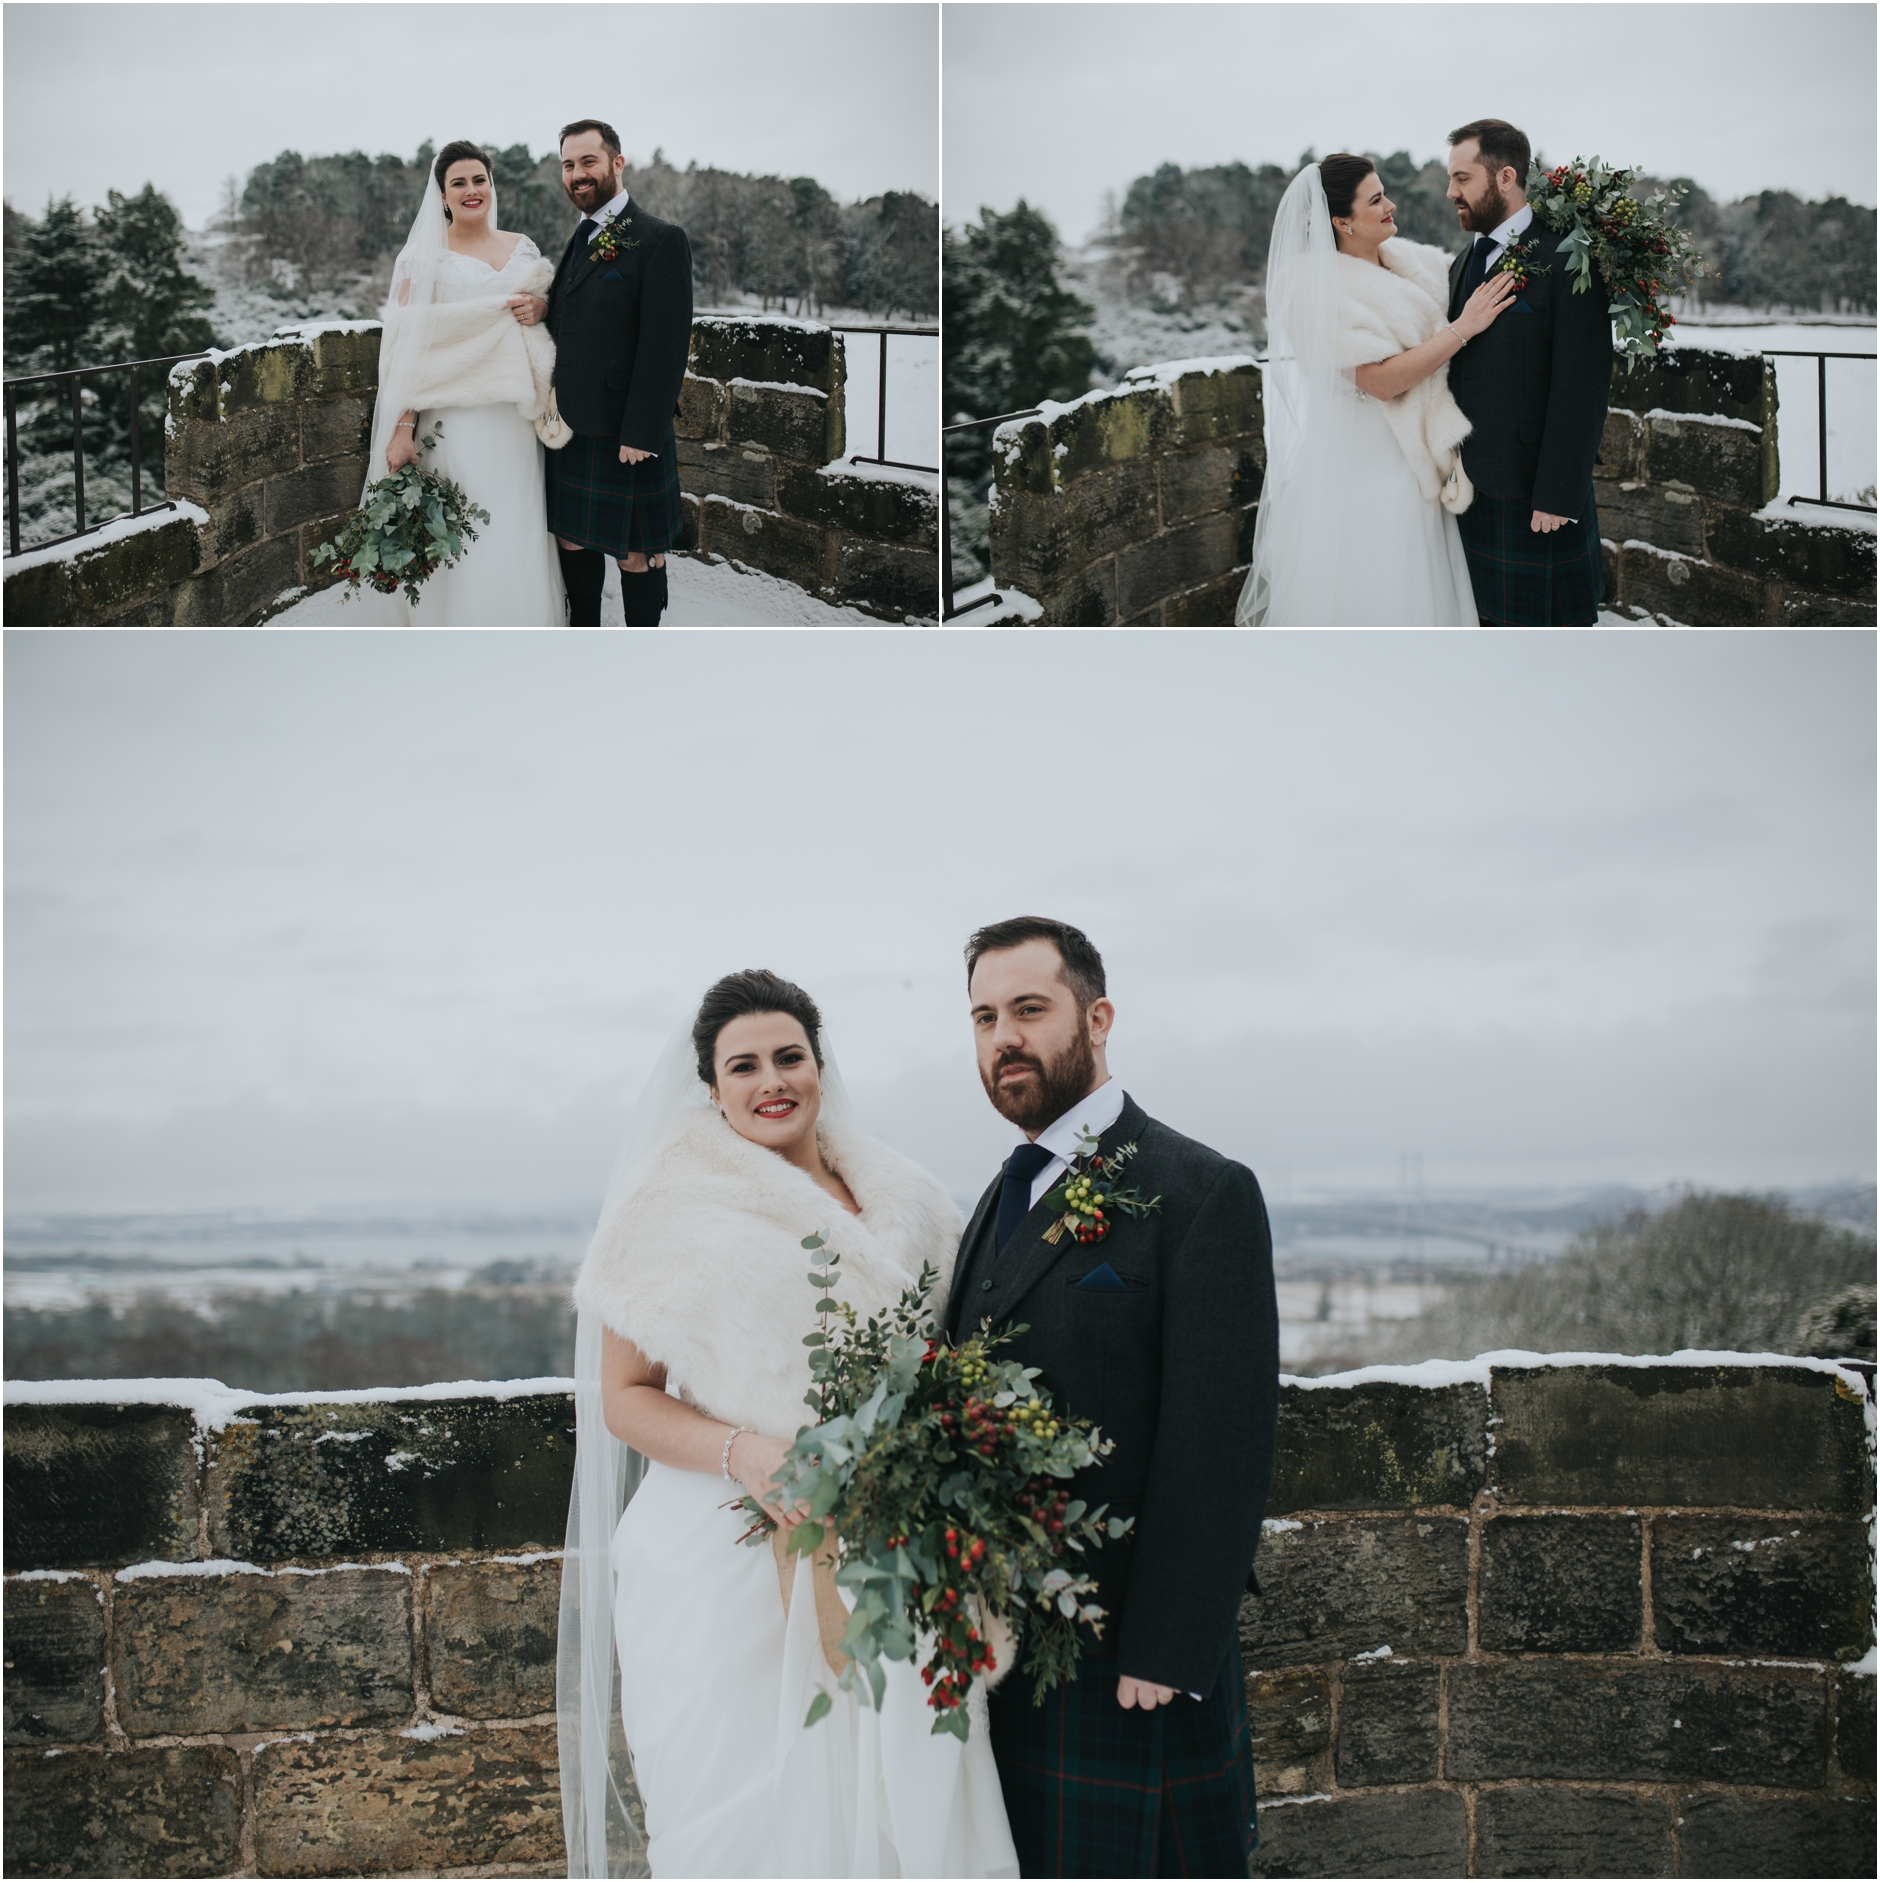 dundas castle wedding winter bride and groom in the snow